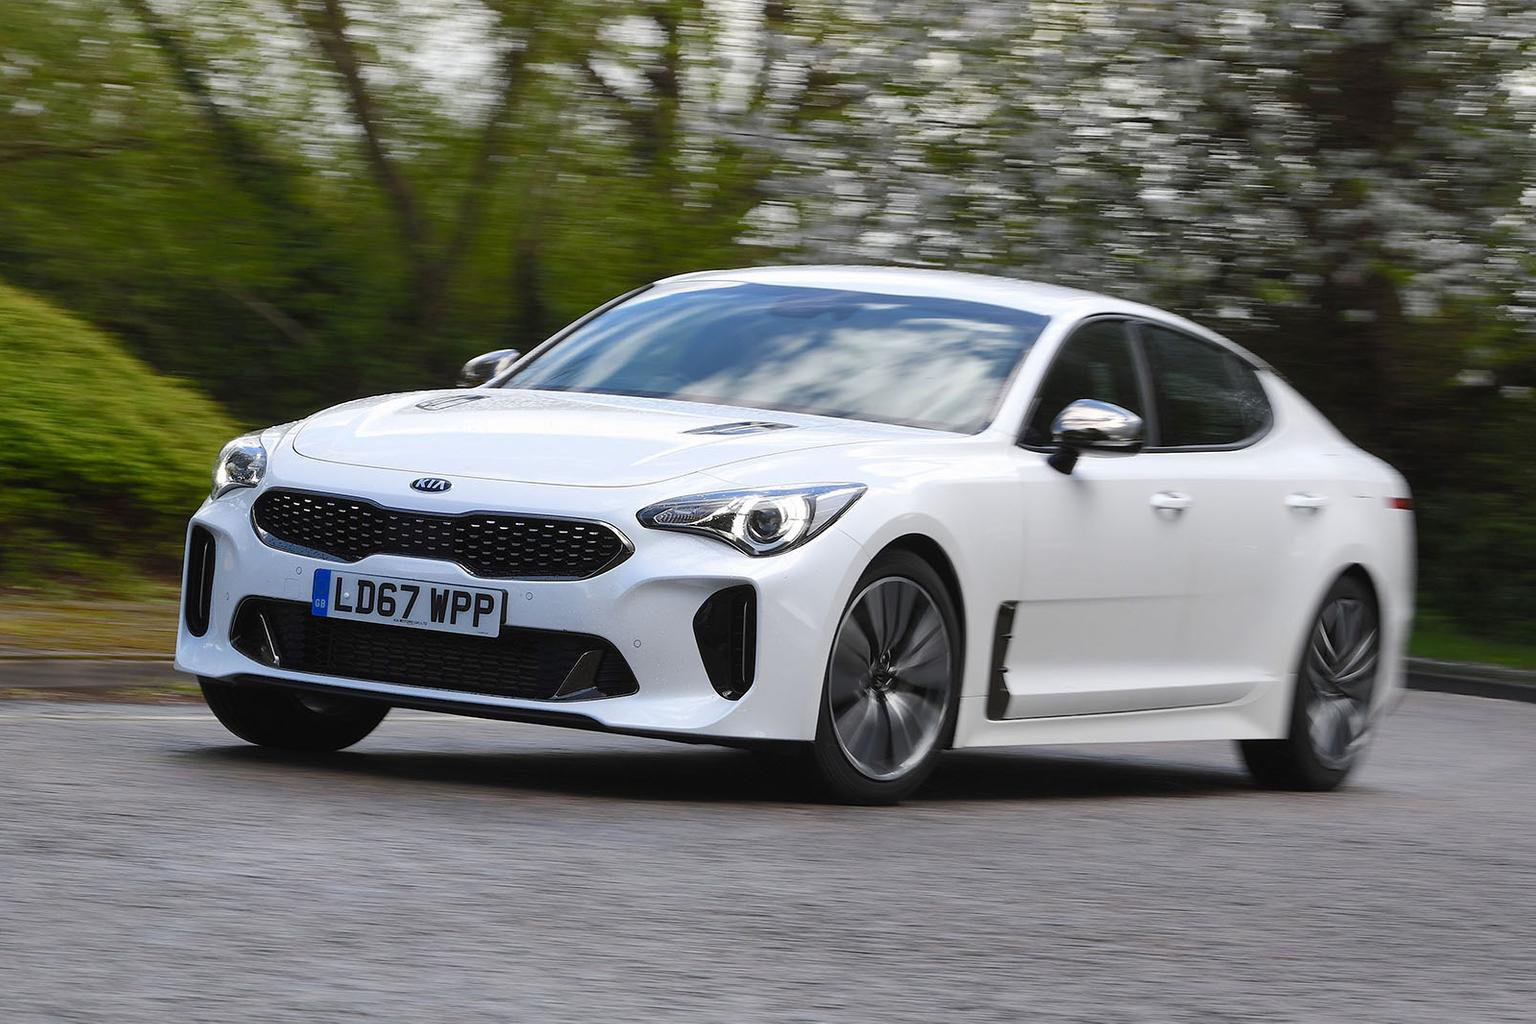 2018 Kia Stinger 2.0T-GDI review – prices, specs and release date